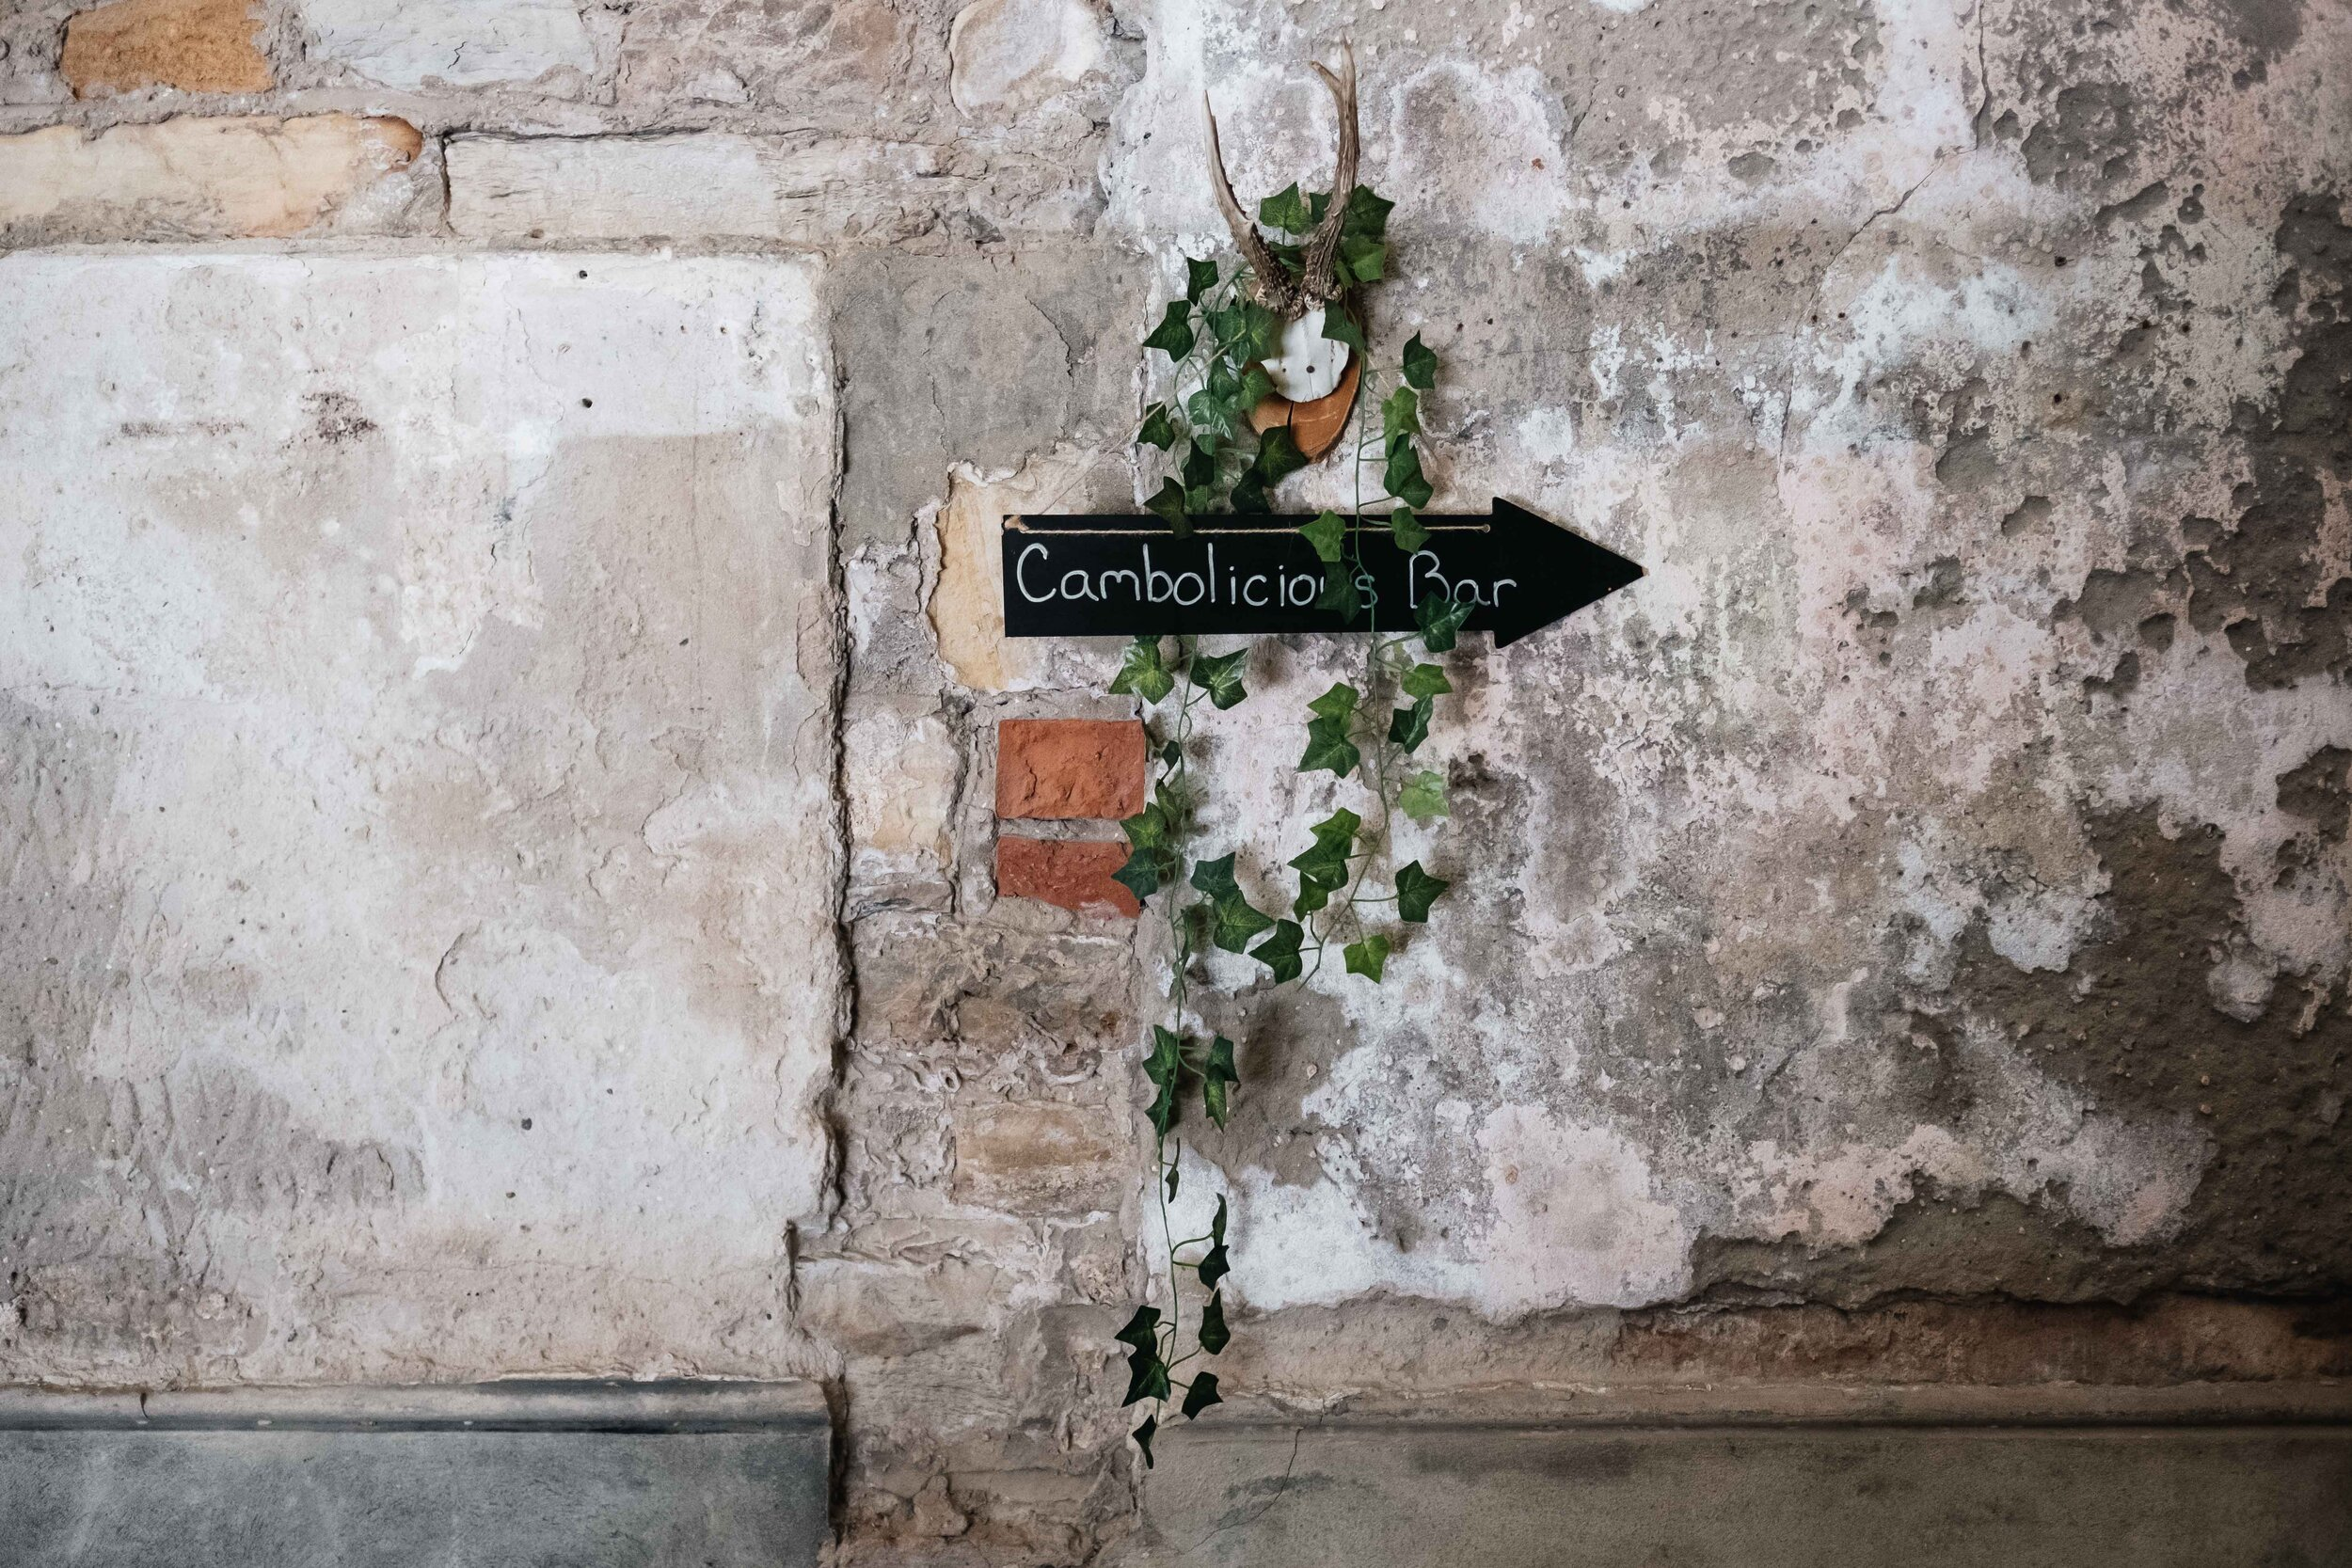 The Cambolicious arrow pointing to the direction of the bar is on the wall of Cambo House Estate.